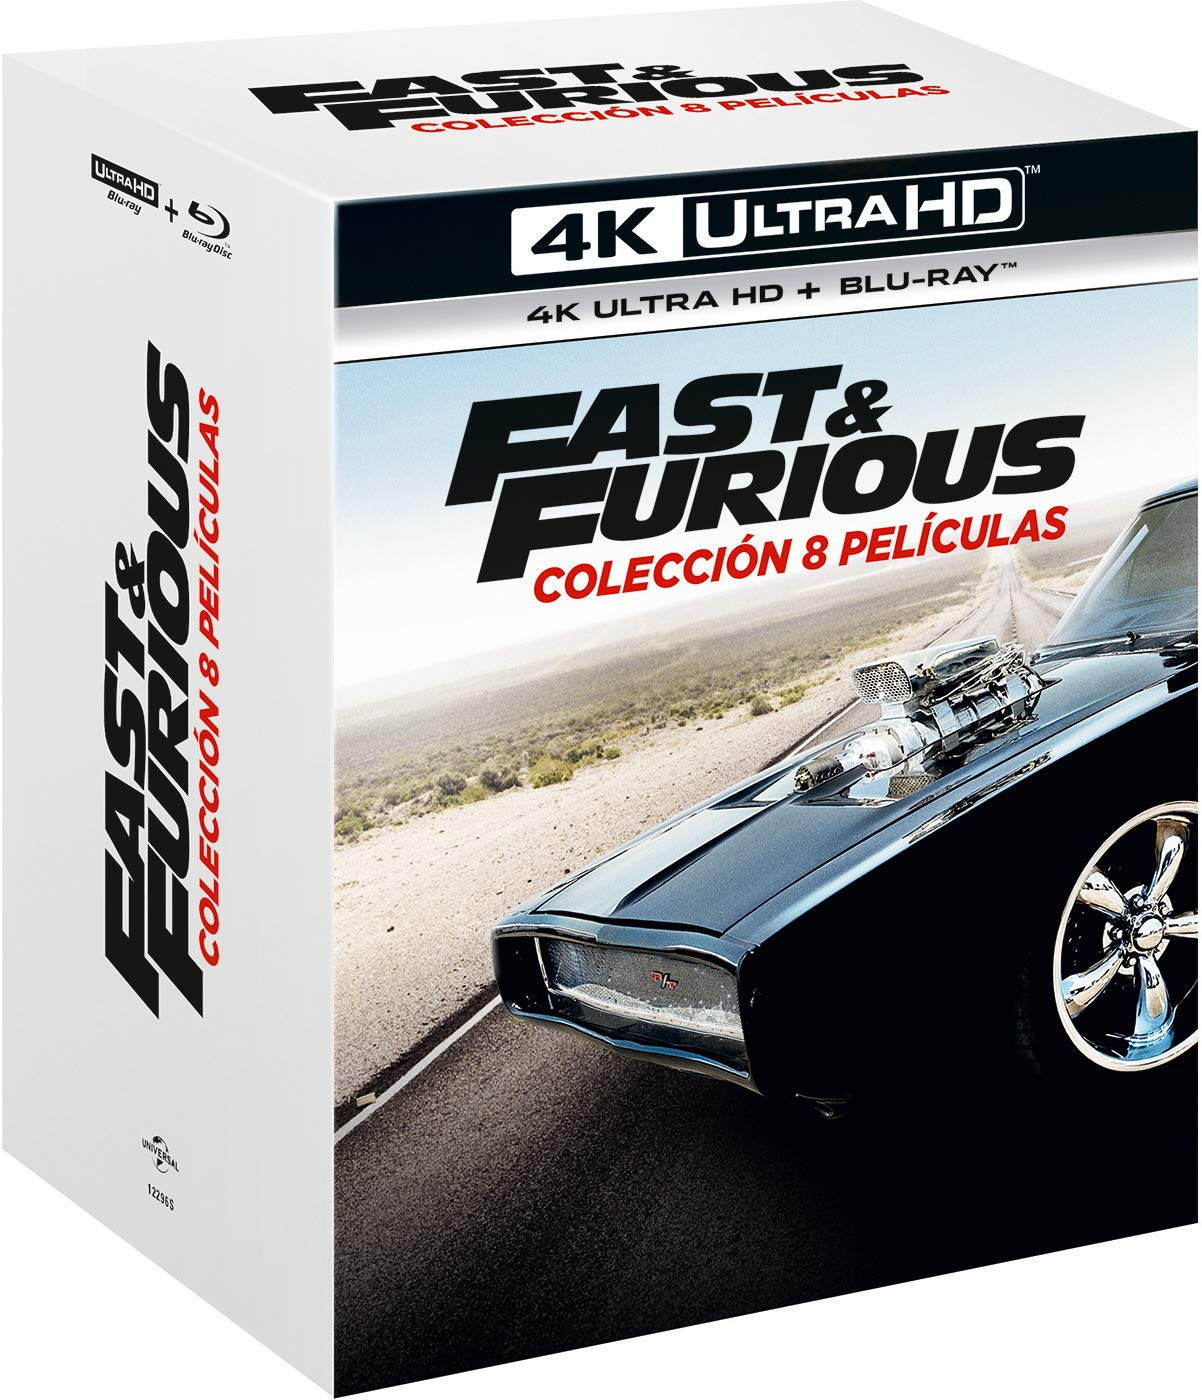 Pack. A Todo Gas - Películas 1-8 4K UHD + BD Blu-ray: Amazon.es: Vin Diesel, Paul Walker, Michelle Rodriguez, Rob Cohen, Vin Diesel, Paul Walker, Universal Pictures, Original Film, Mediastream Film GmbH